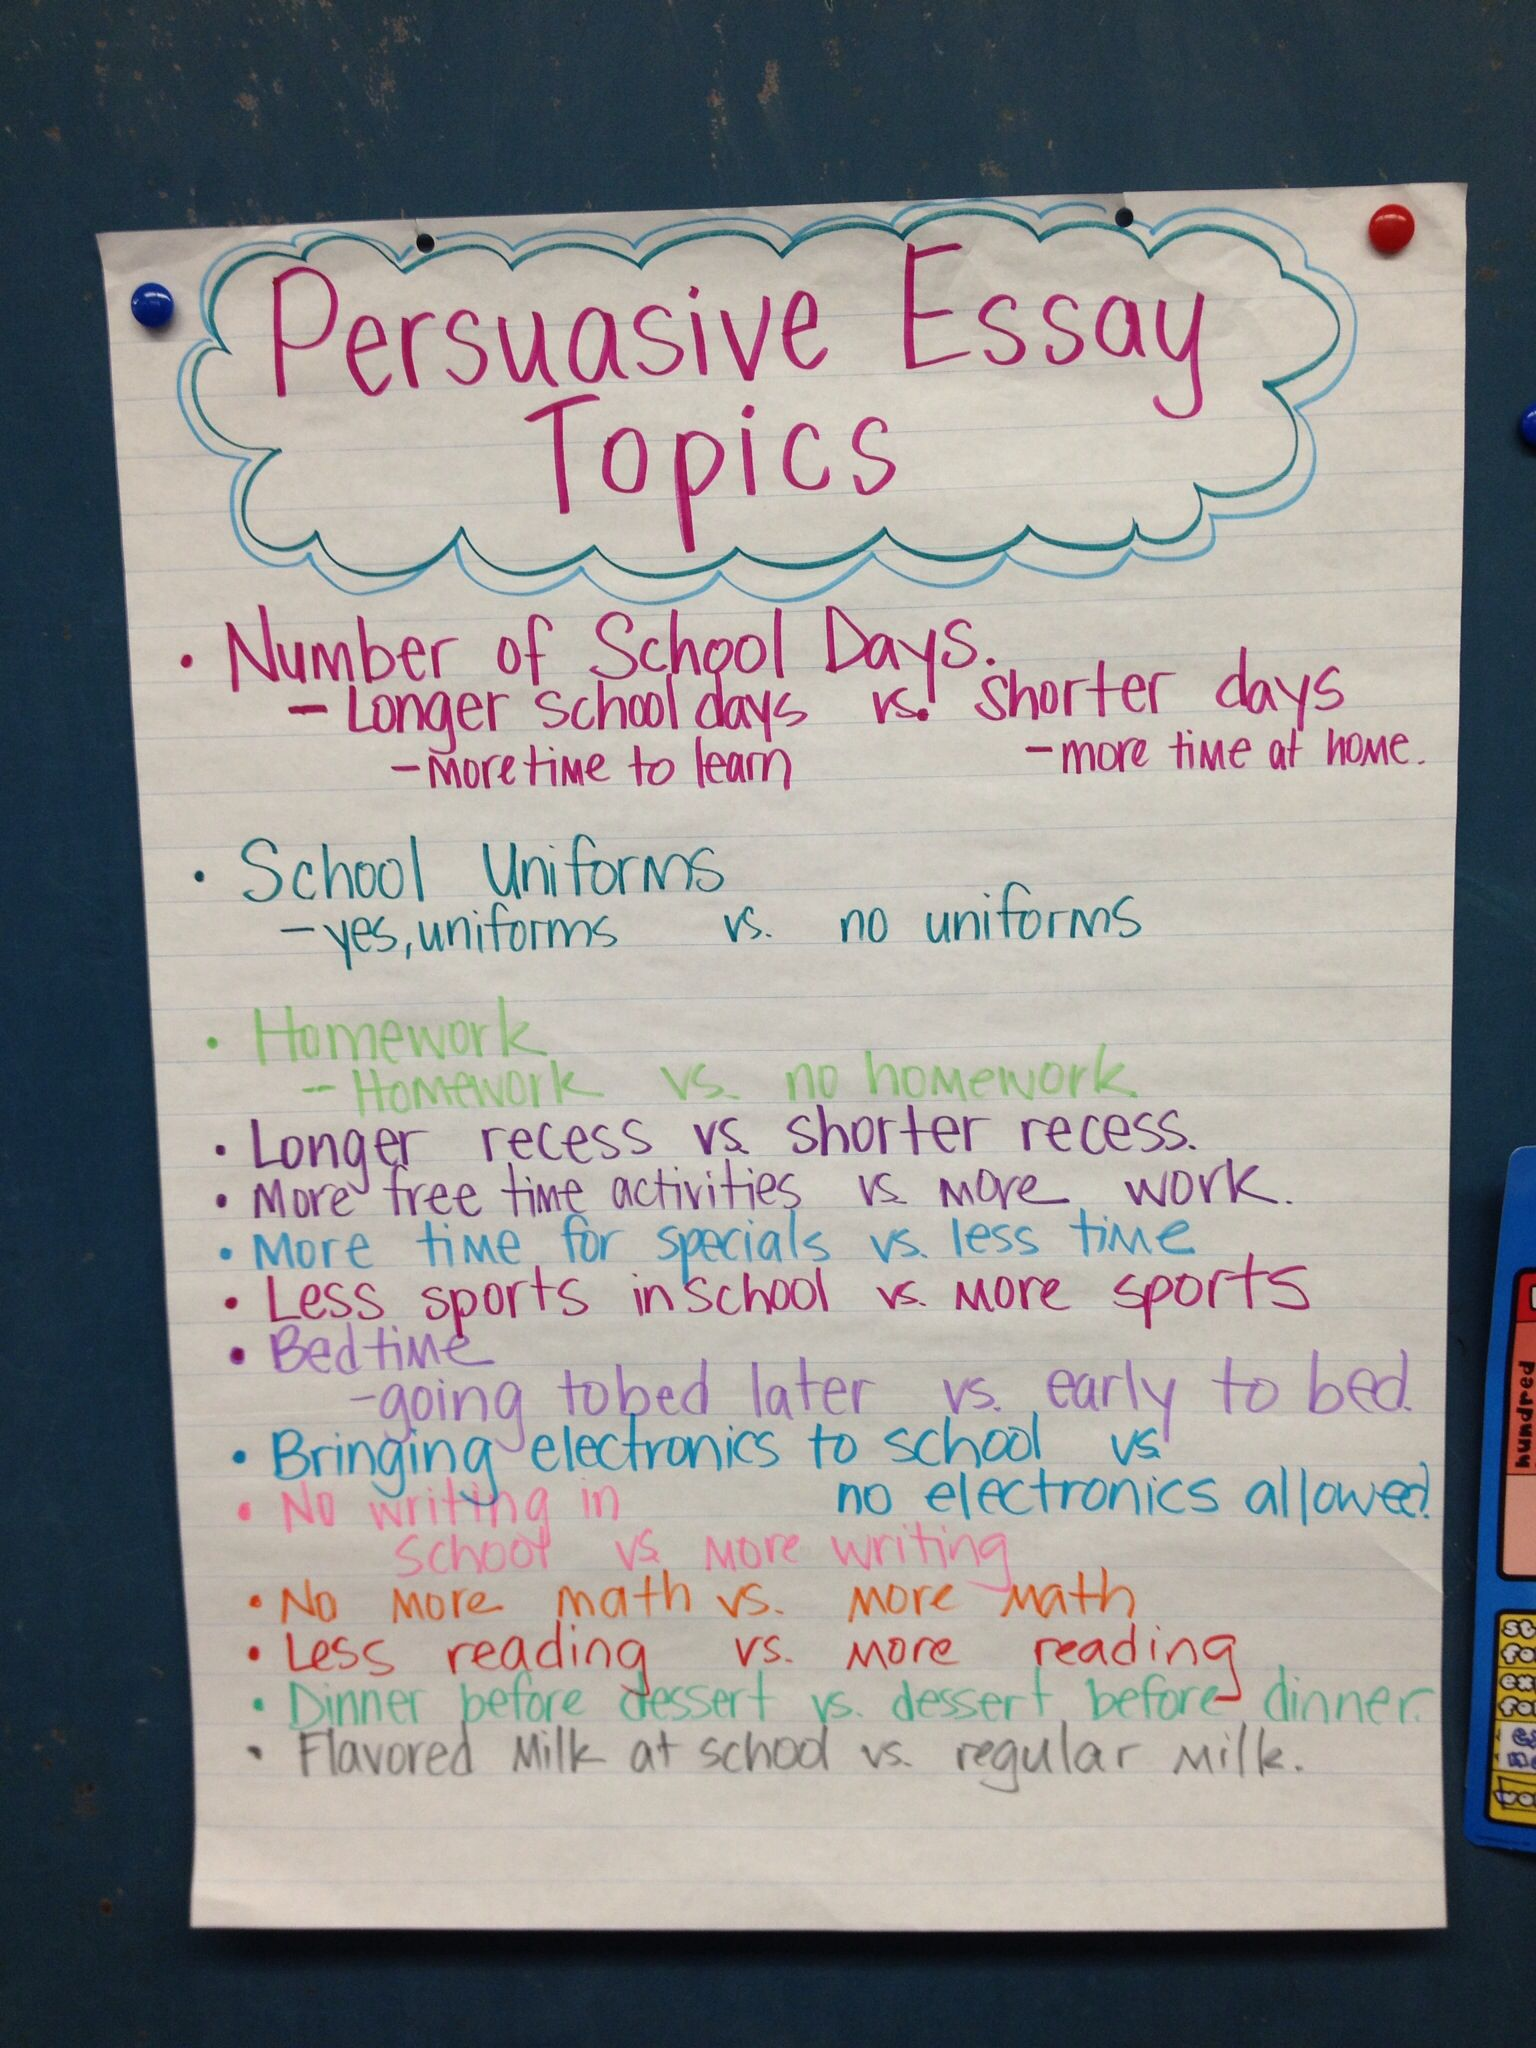 004 Topics For Persuasive Essays Essay Incredible 4th Grade Full